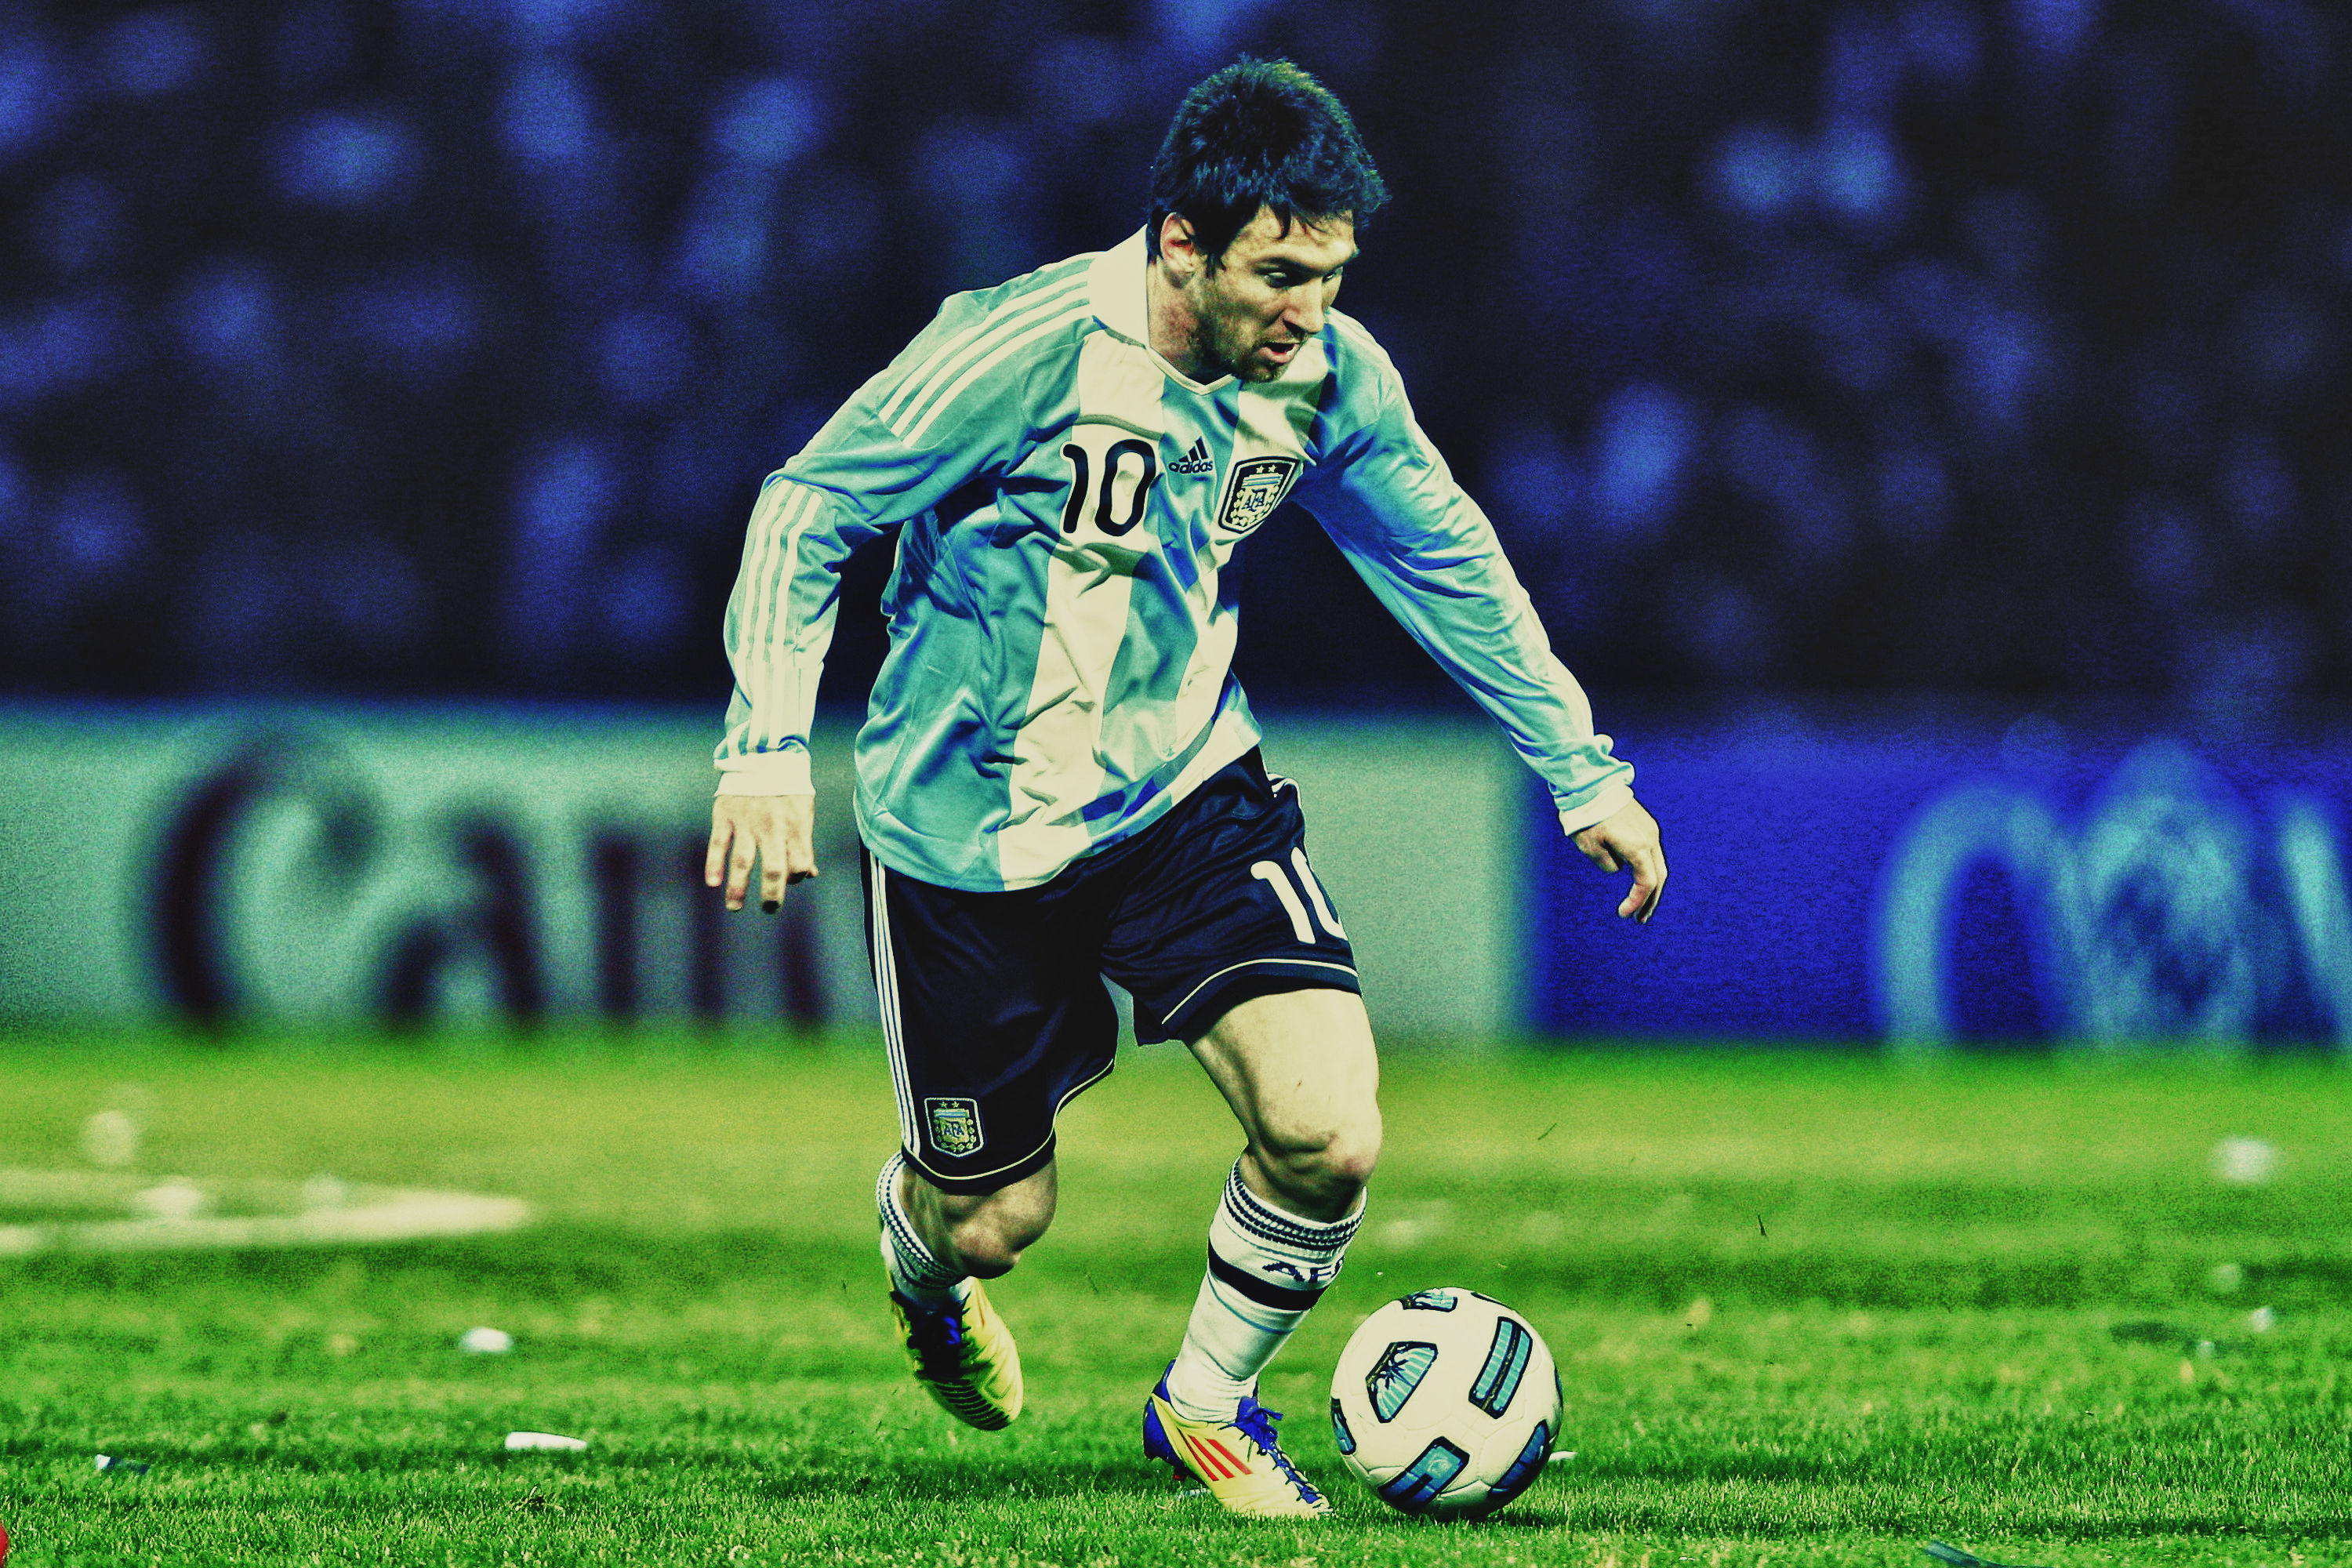 Lionel Messi Full Size Hd: Lionel Messi Full HD Wallpaper And Background Image